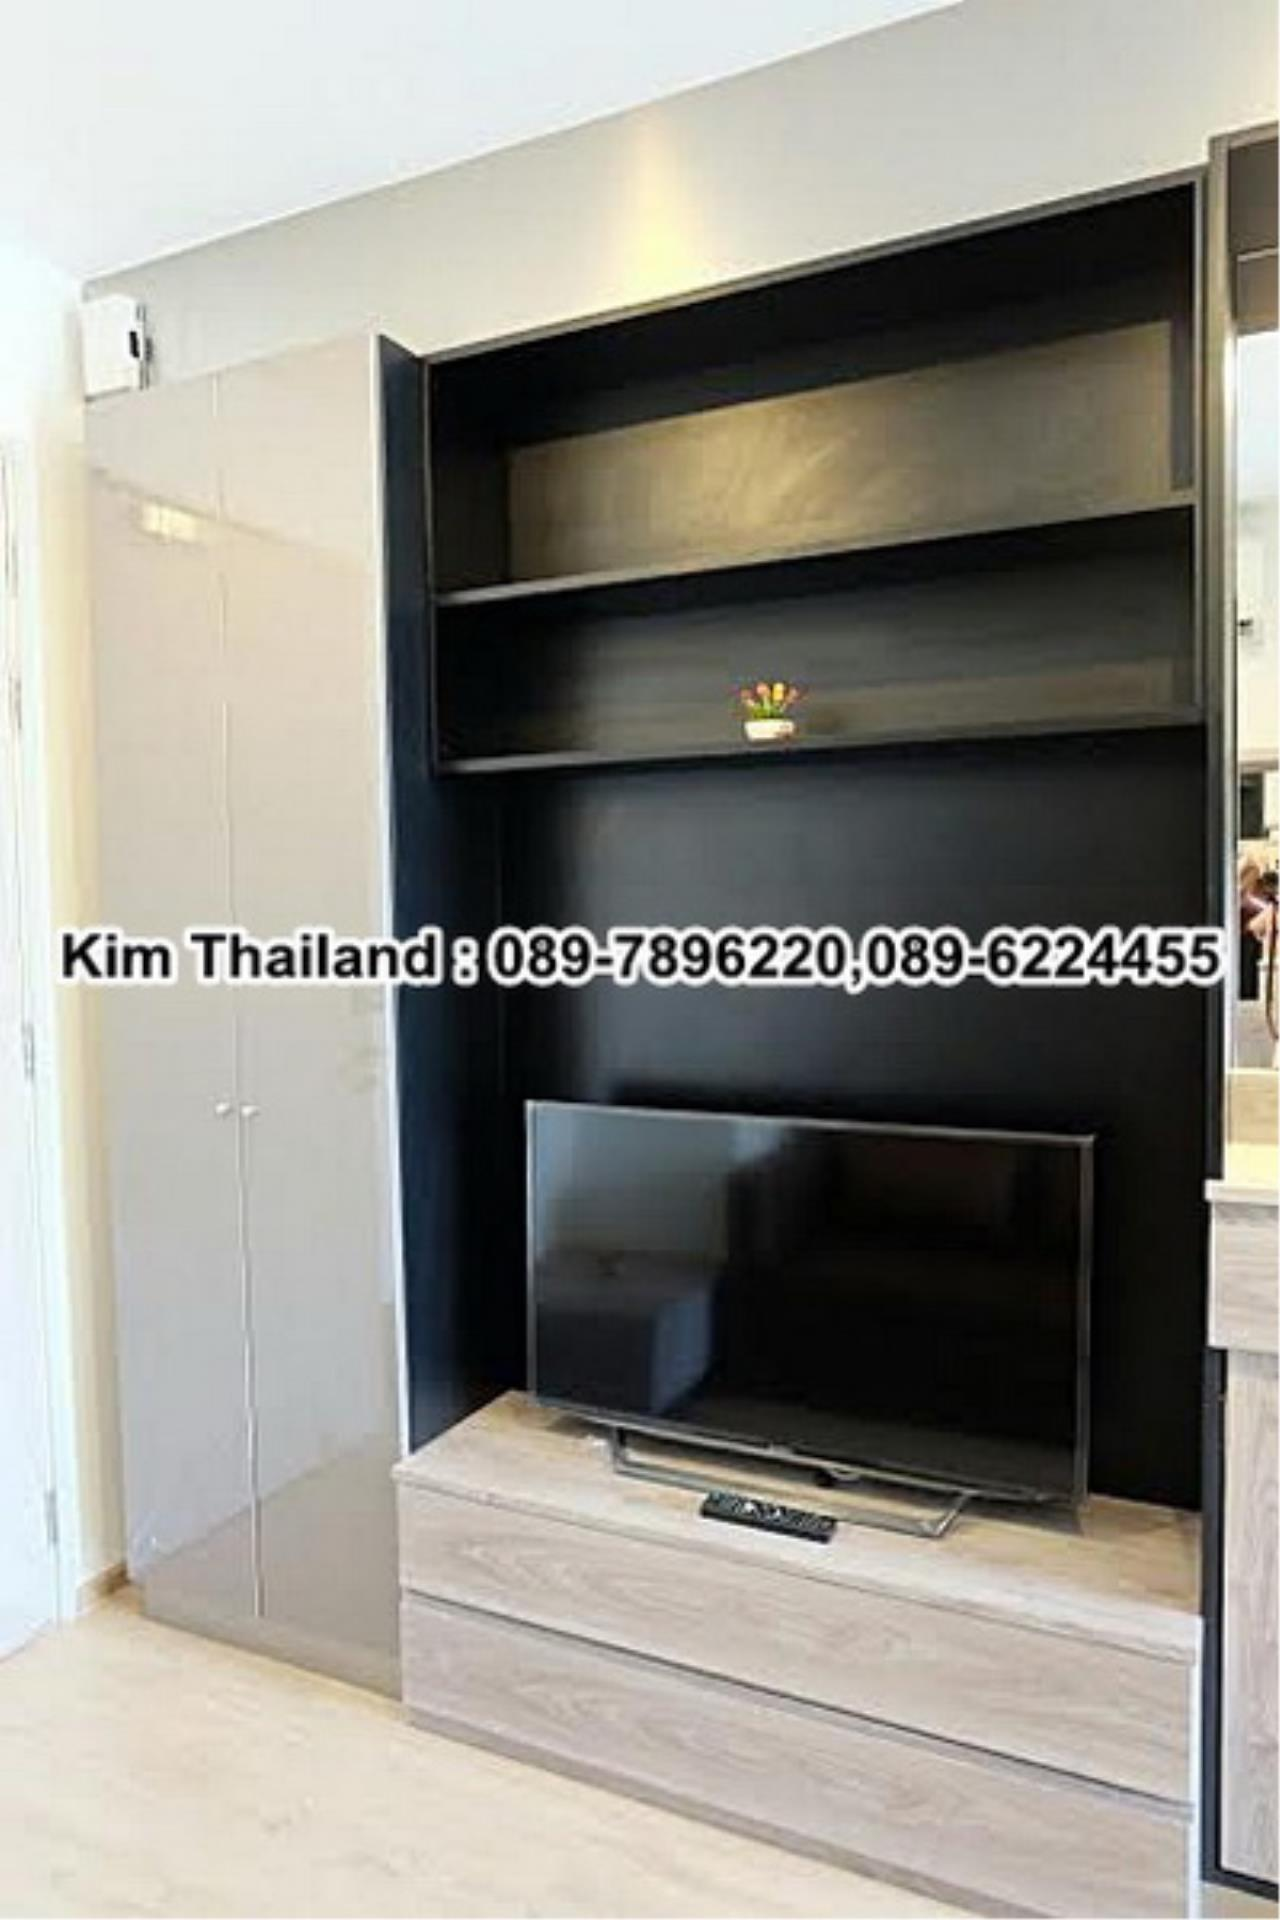 BKKcondorental Agency's Condo for rent,Condo Ideo Q Samyan. Area 29 sqm. 1 bedroom.  Rent 23,000 baht /month. 11